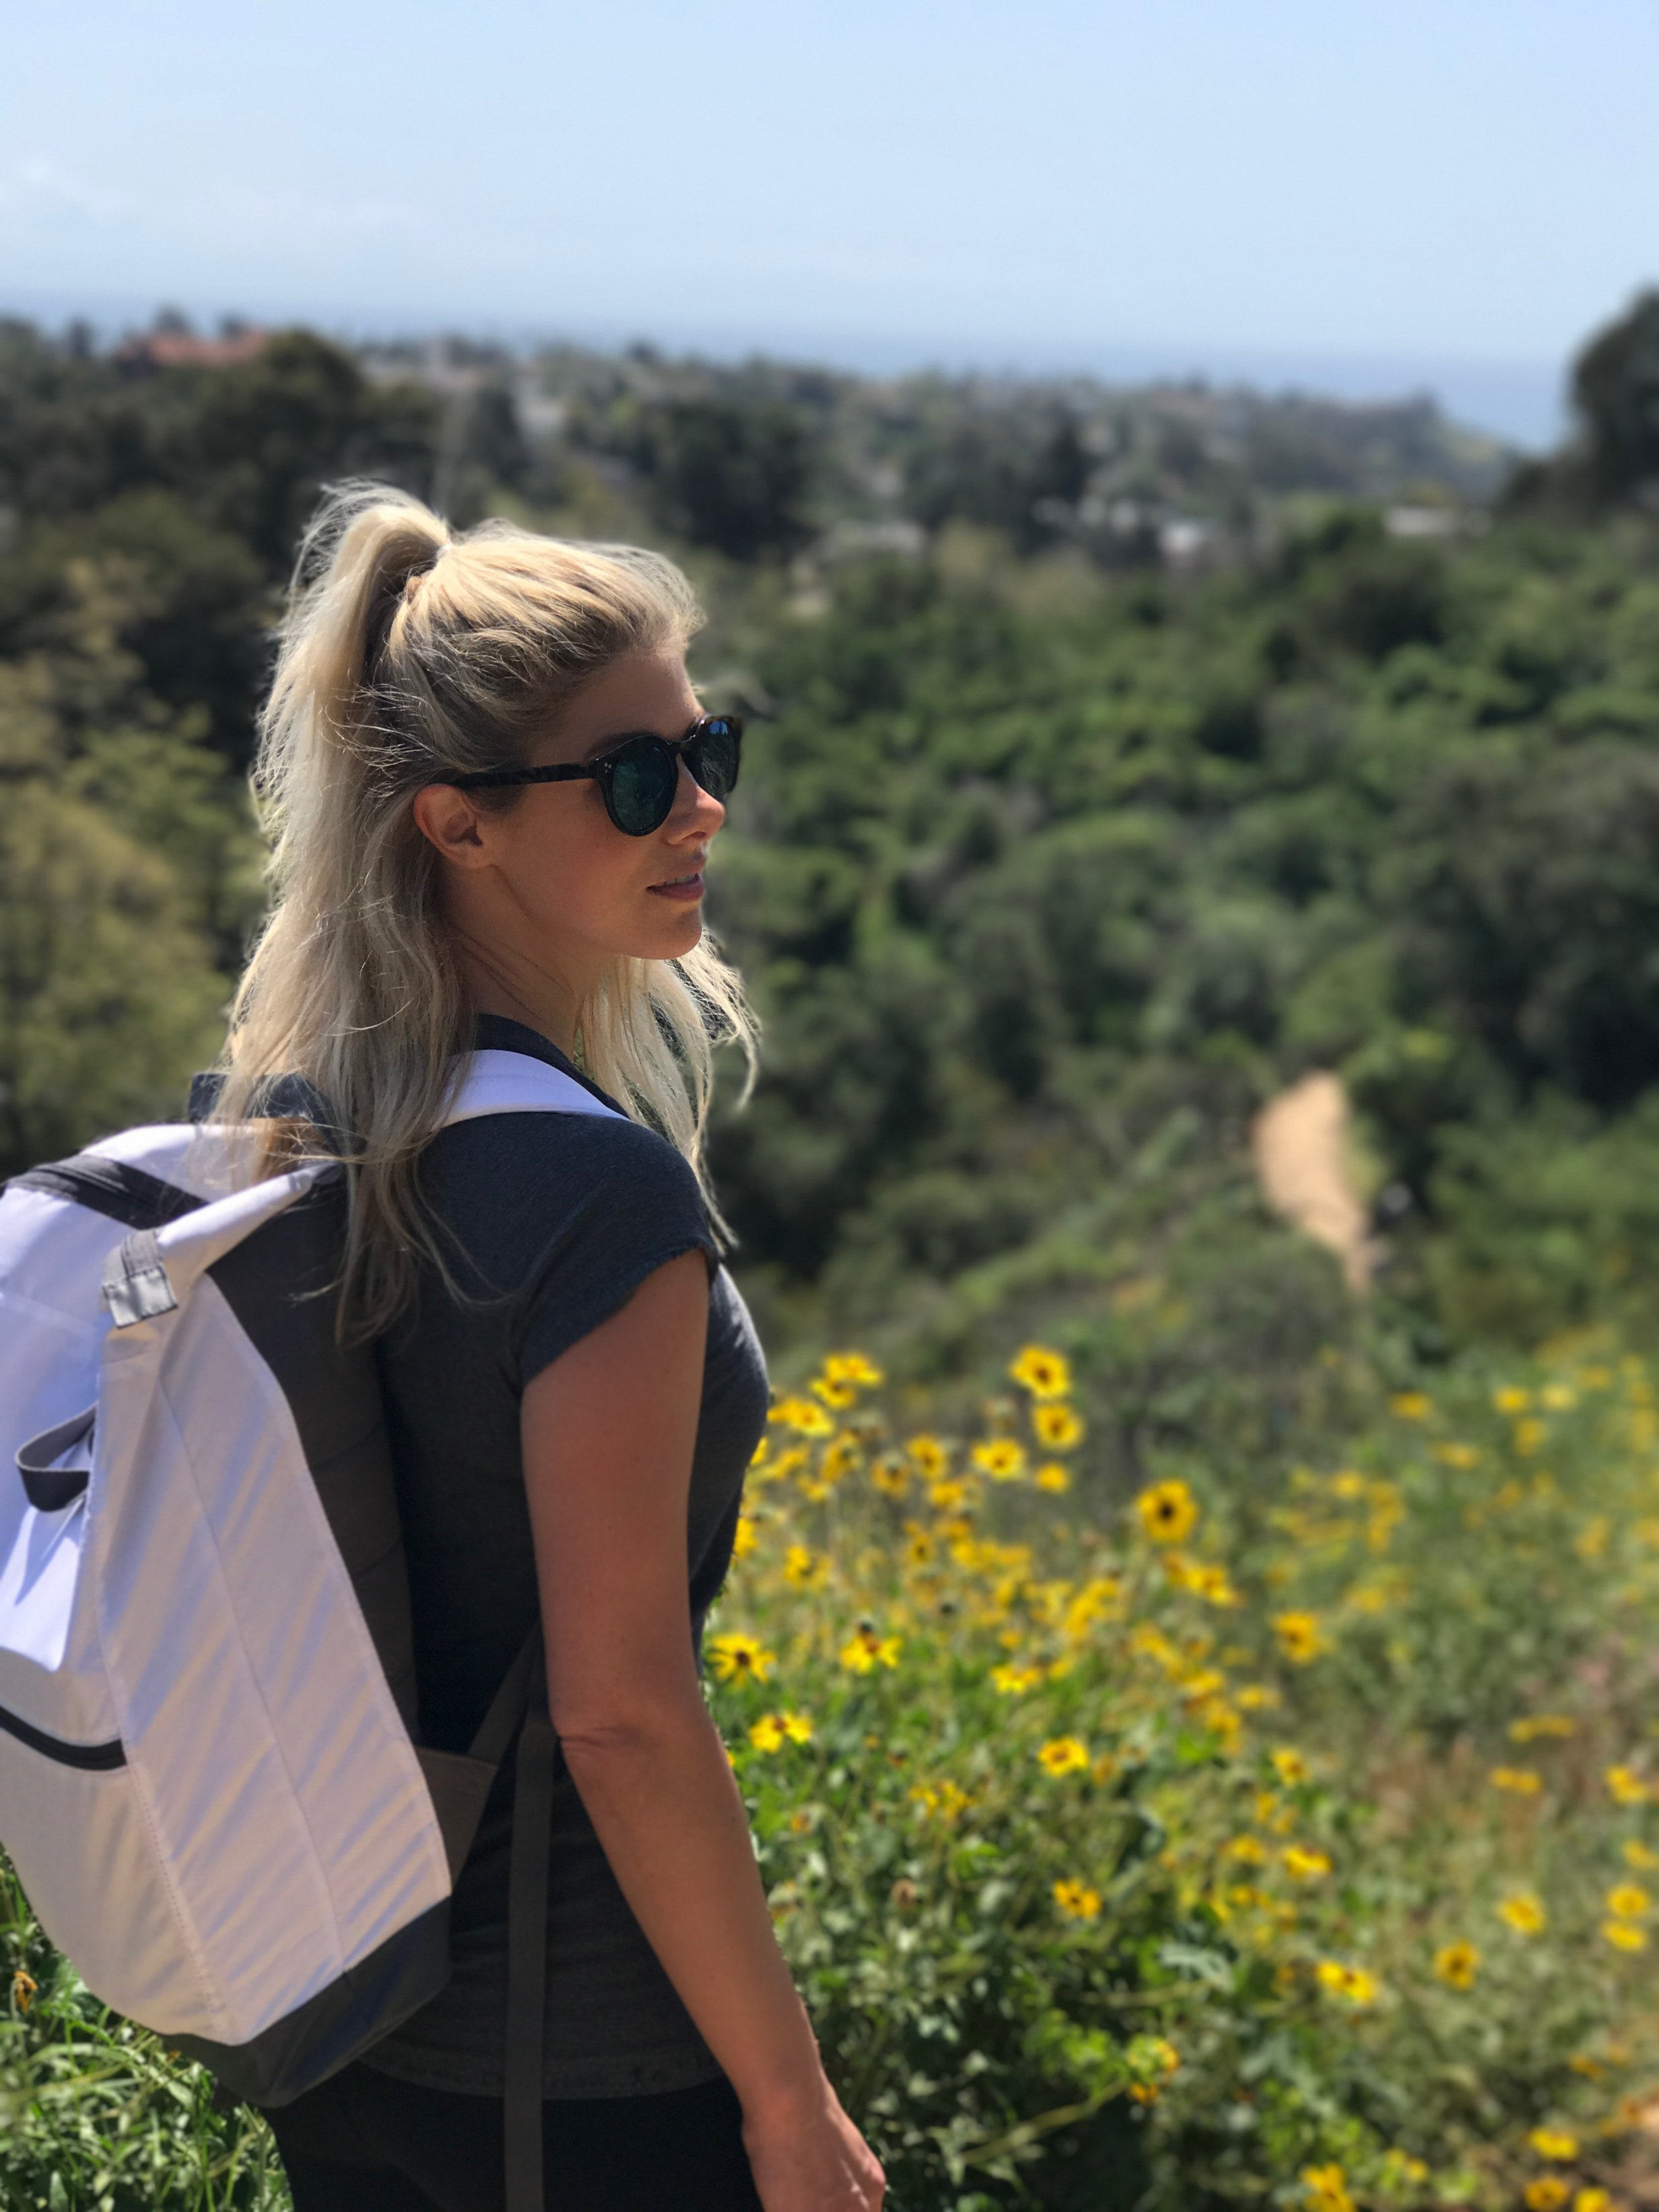 I'm hiking Temescal Canyon to get to one of the most scenic viewpoints in all of LA. Of course, I've got my Bota Box in my backpack and it was so easy and convenient bringing it up to the top of the mountain.